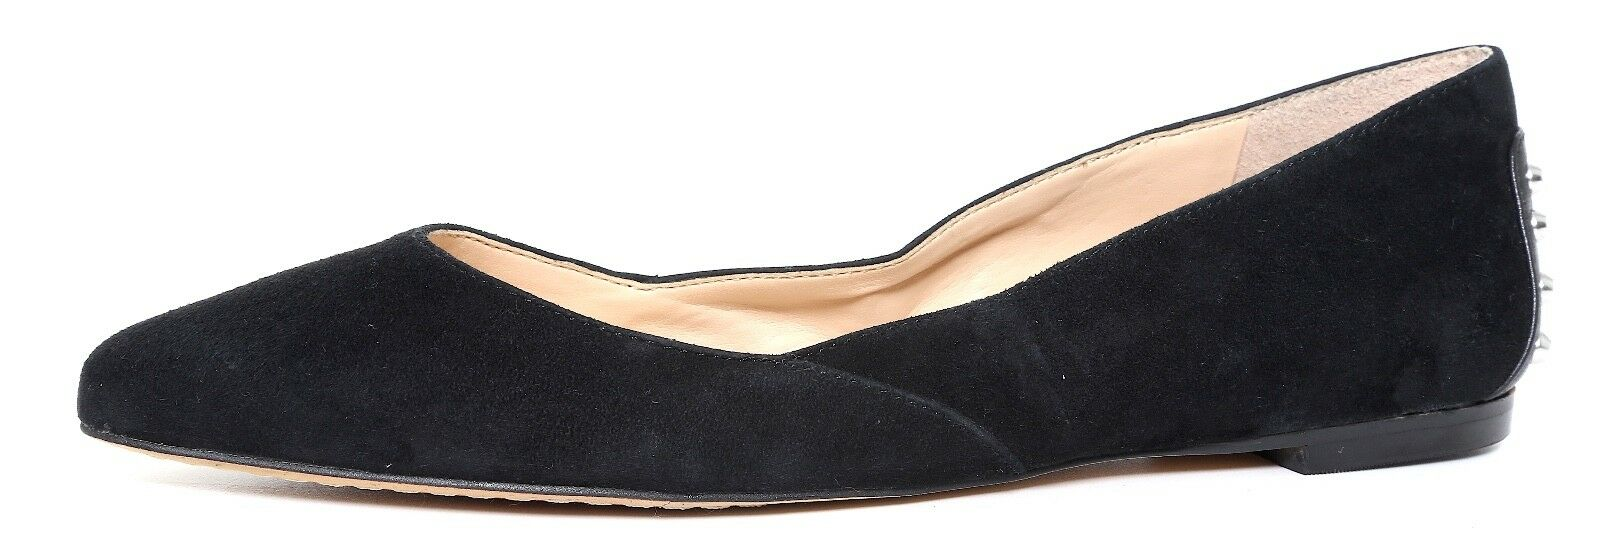 Vince Camuto Alley Black Suede Studded Flats Women Sz 5 M 4426